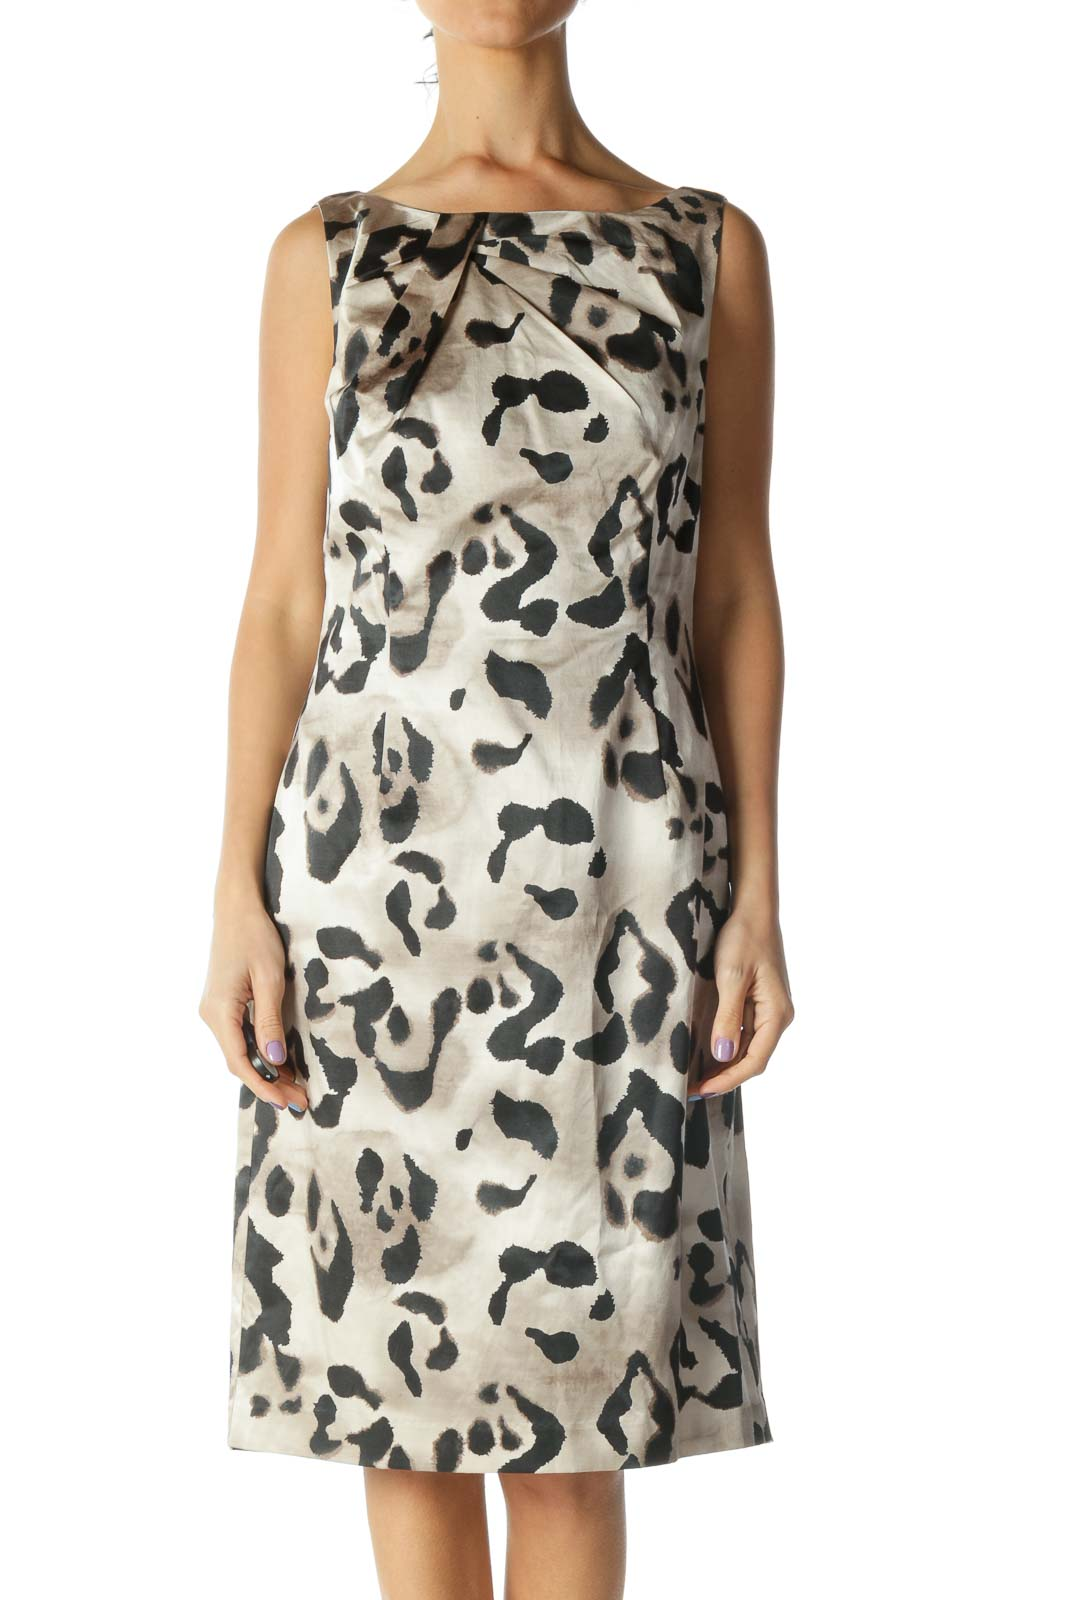 Beige Animal Print Work Dress